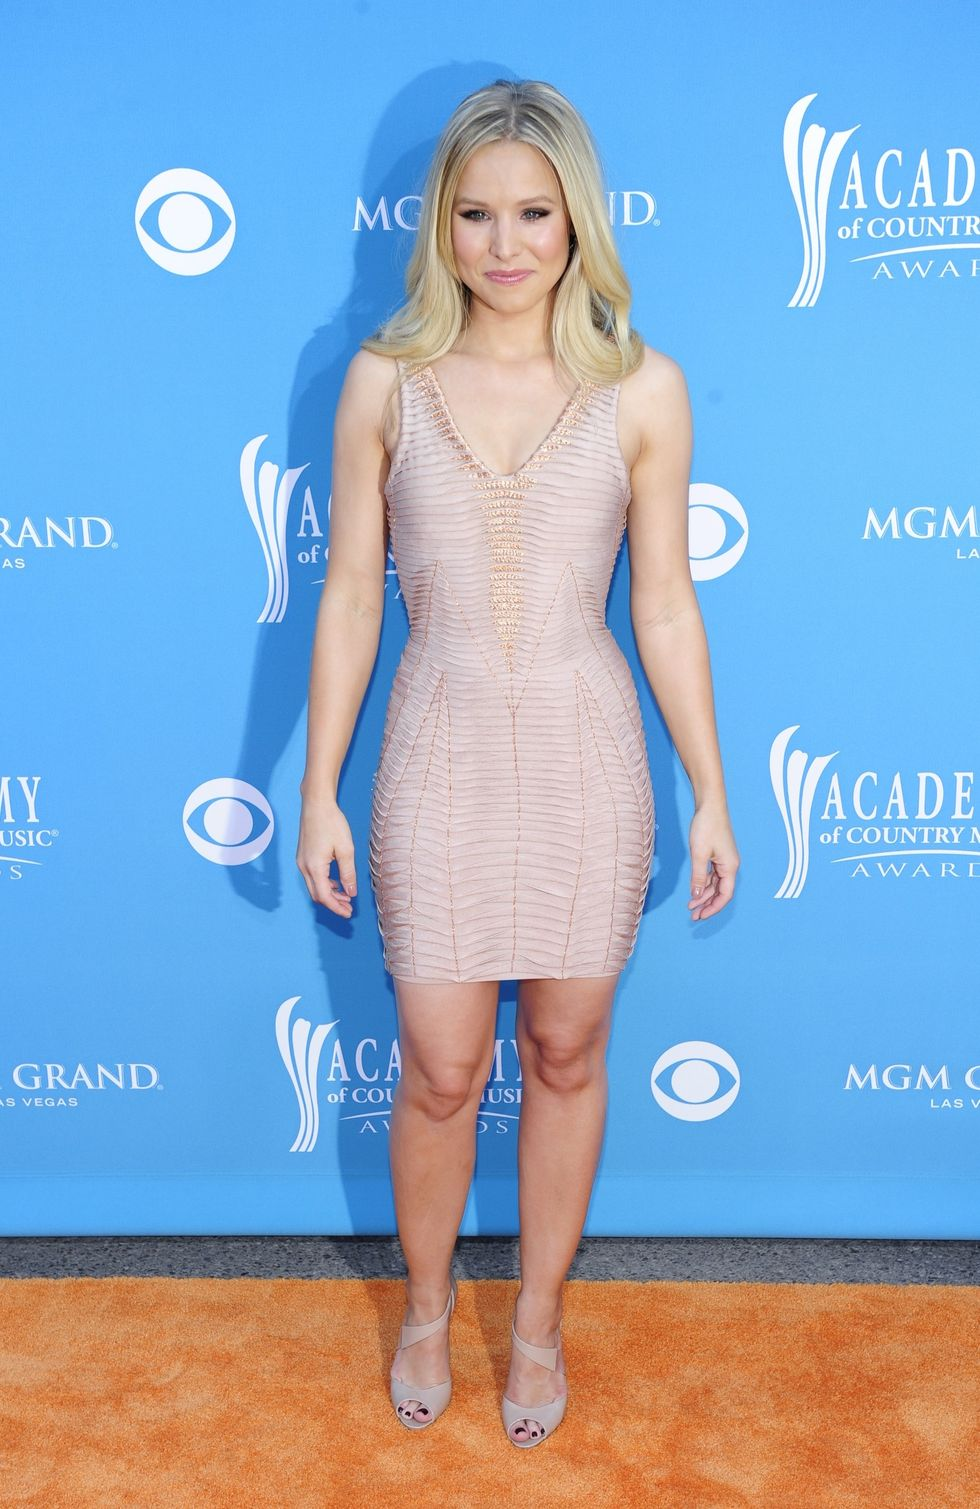 Kristen Bell 2010 : kristen-bell-at-45th-annual-academy-of-country-music-awards-13